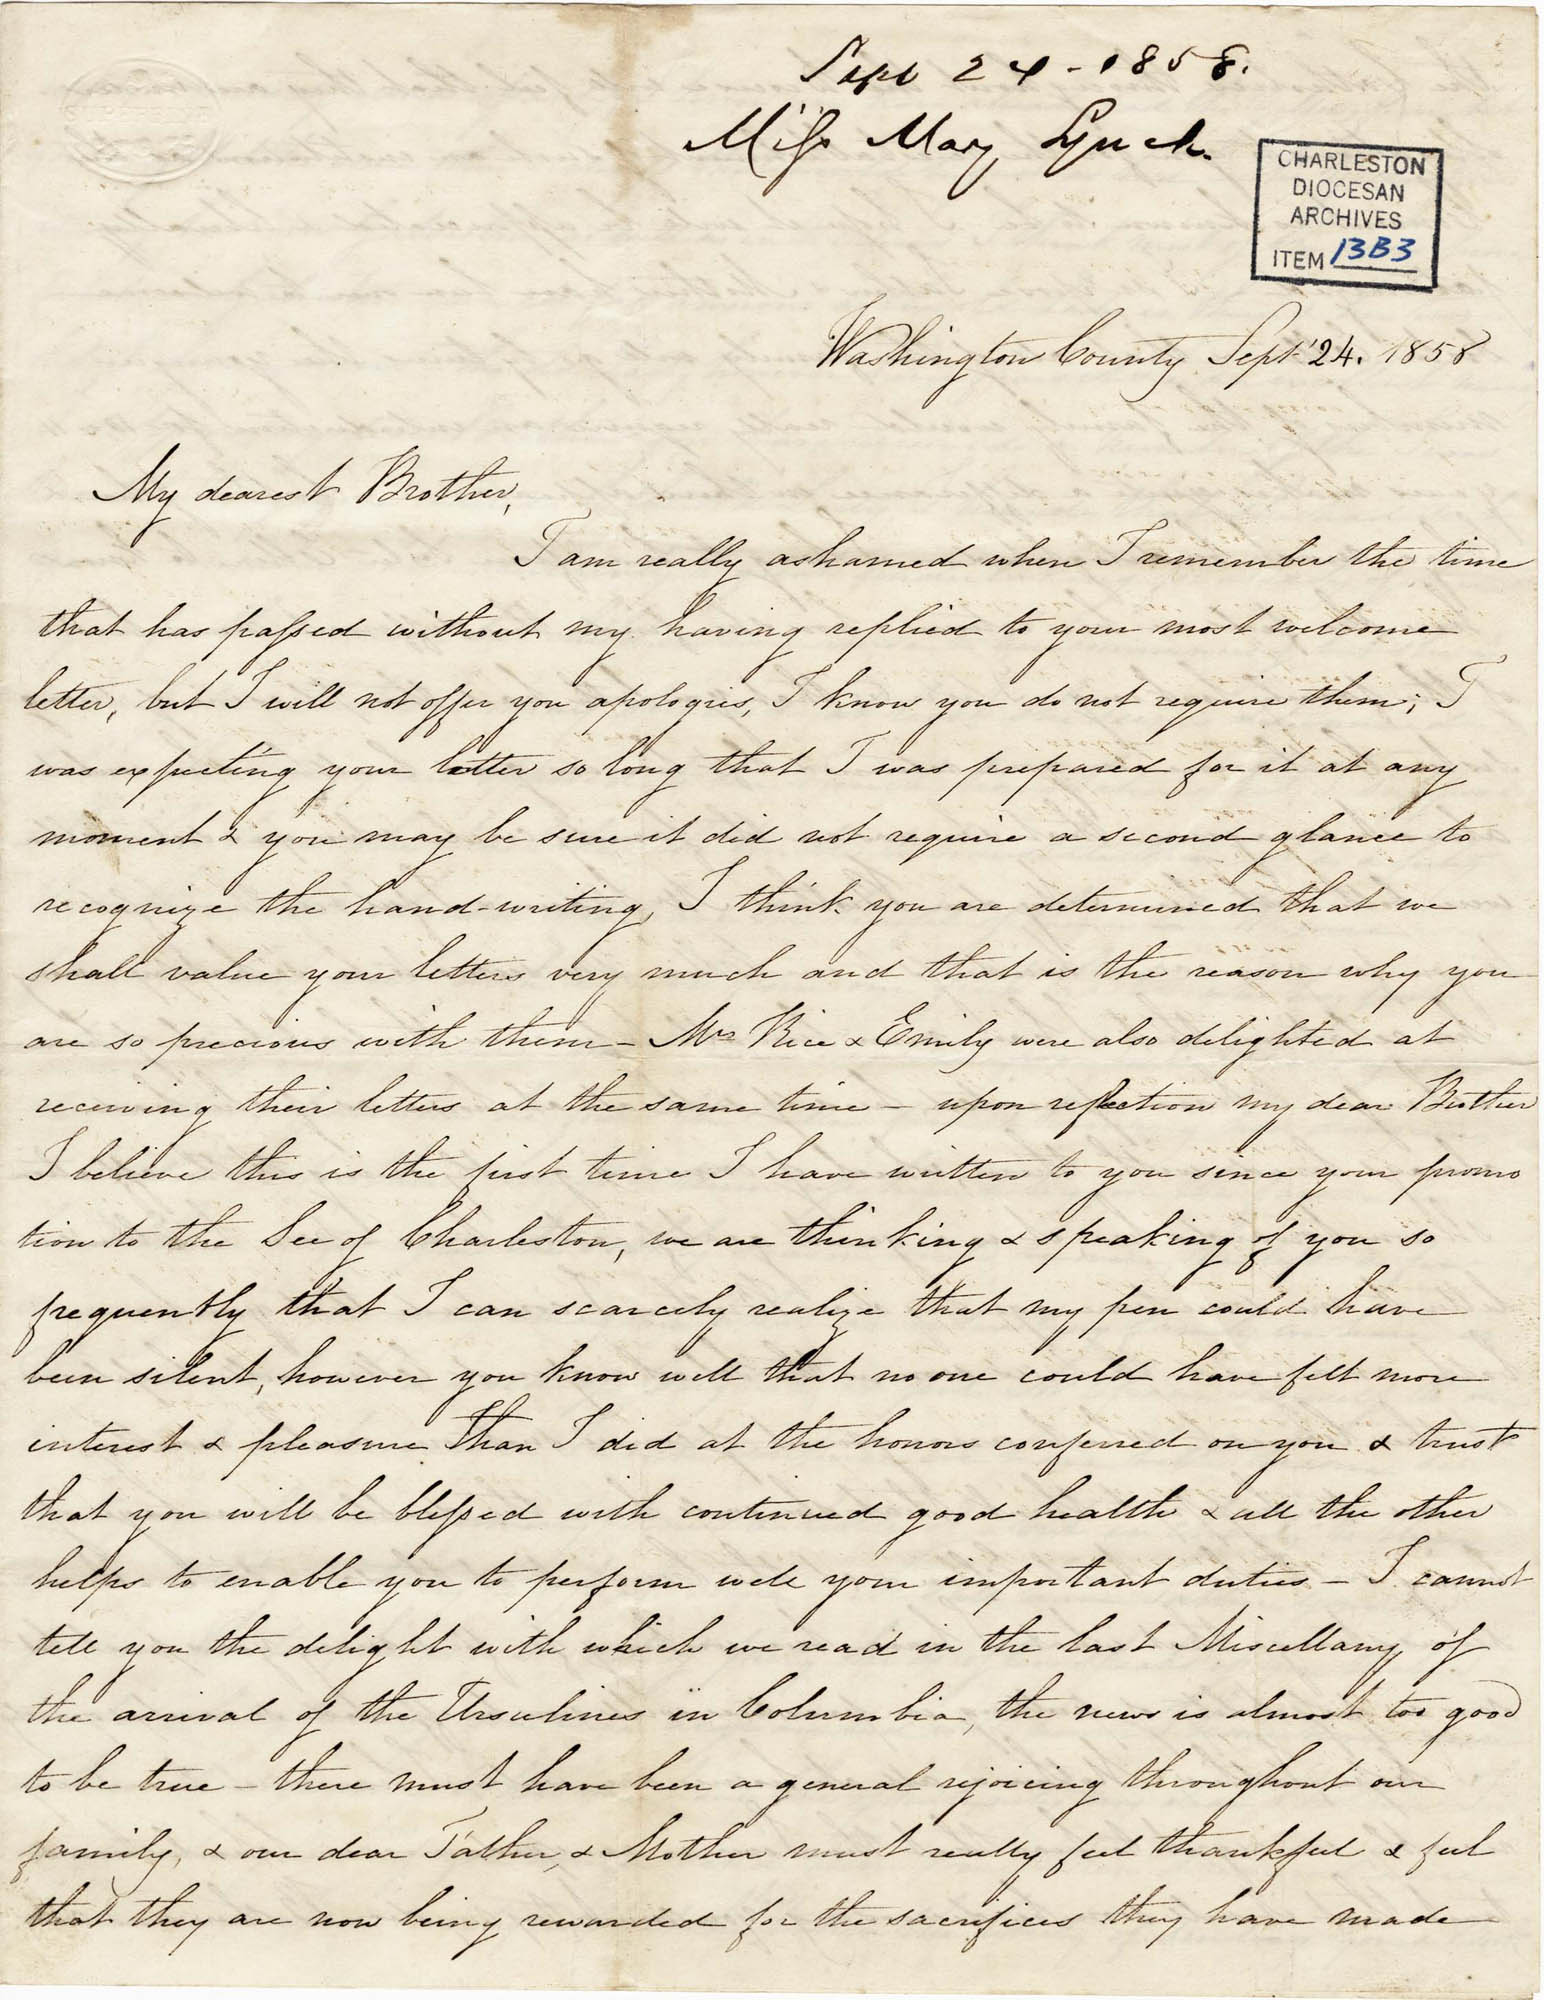 014. Mary Lynch Spann to Bp Patrick Lynch -- September 24, 1858